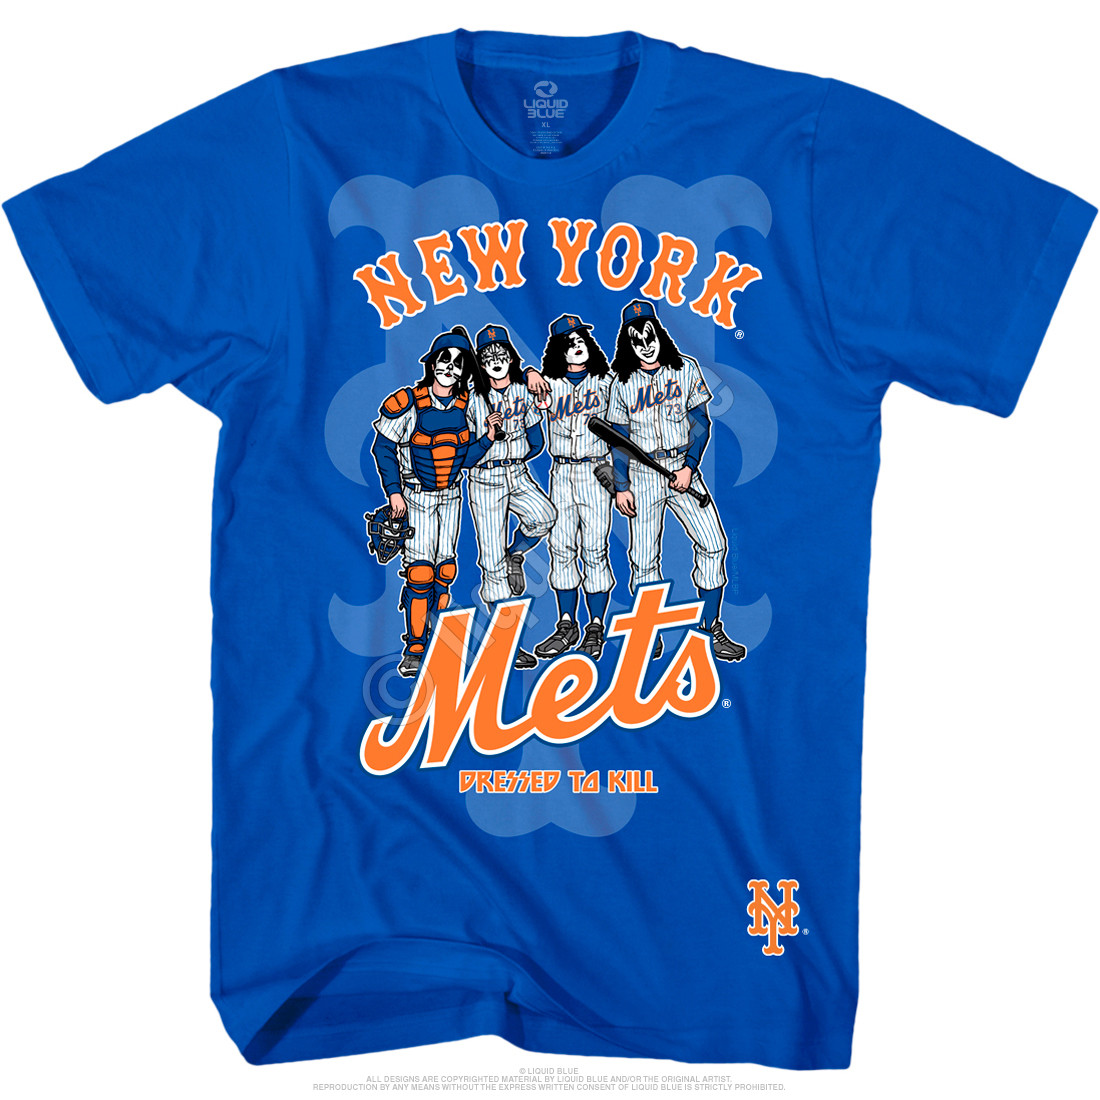 New York Mets Dressed to Kill Blue T-Shirt